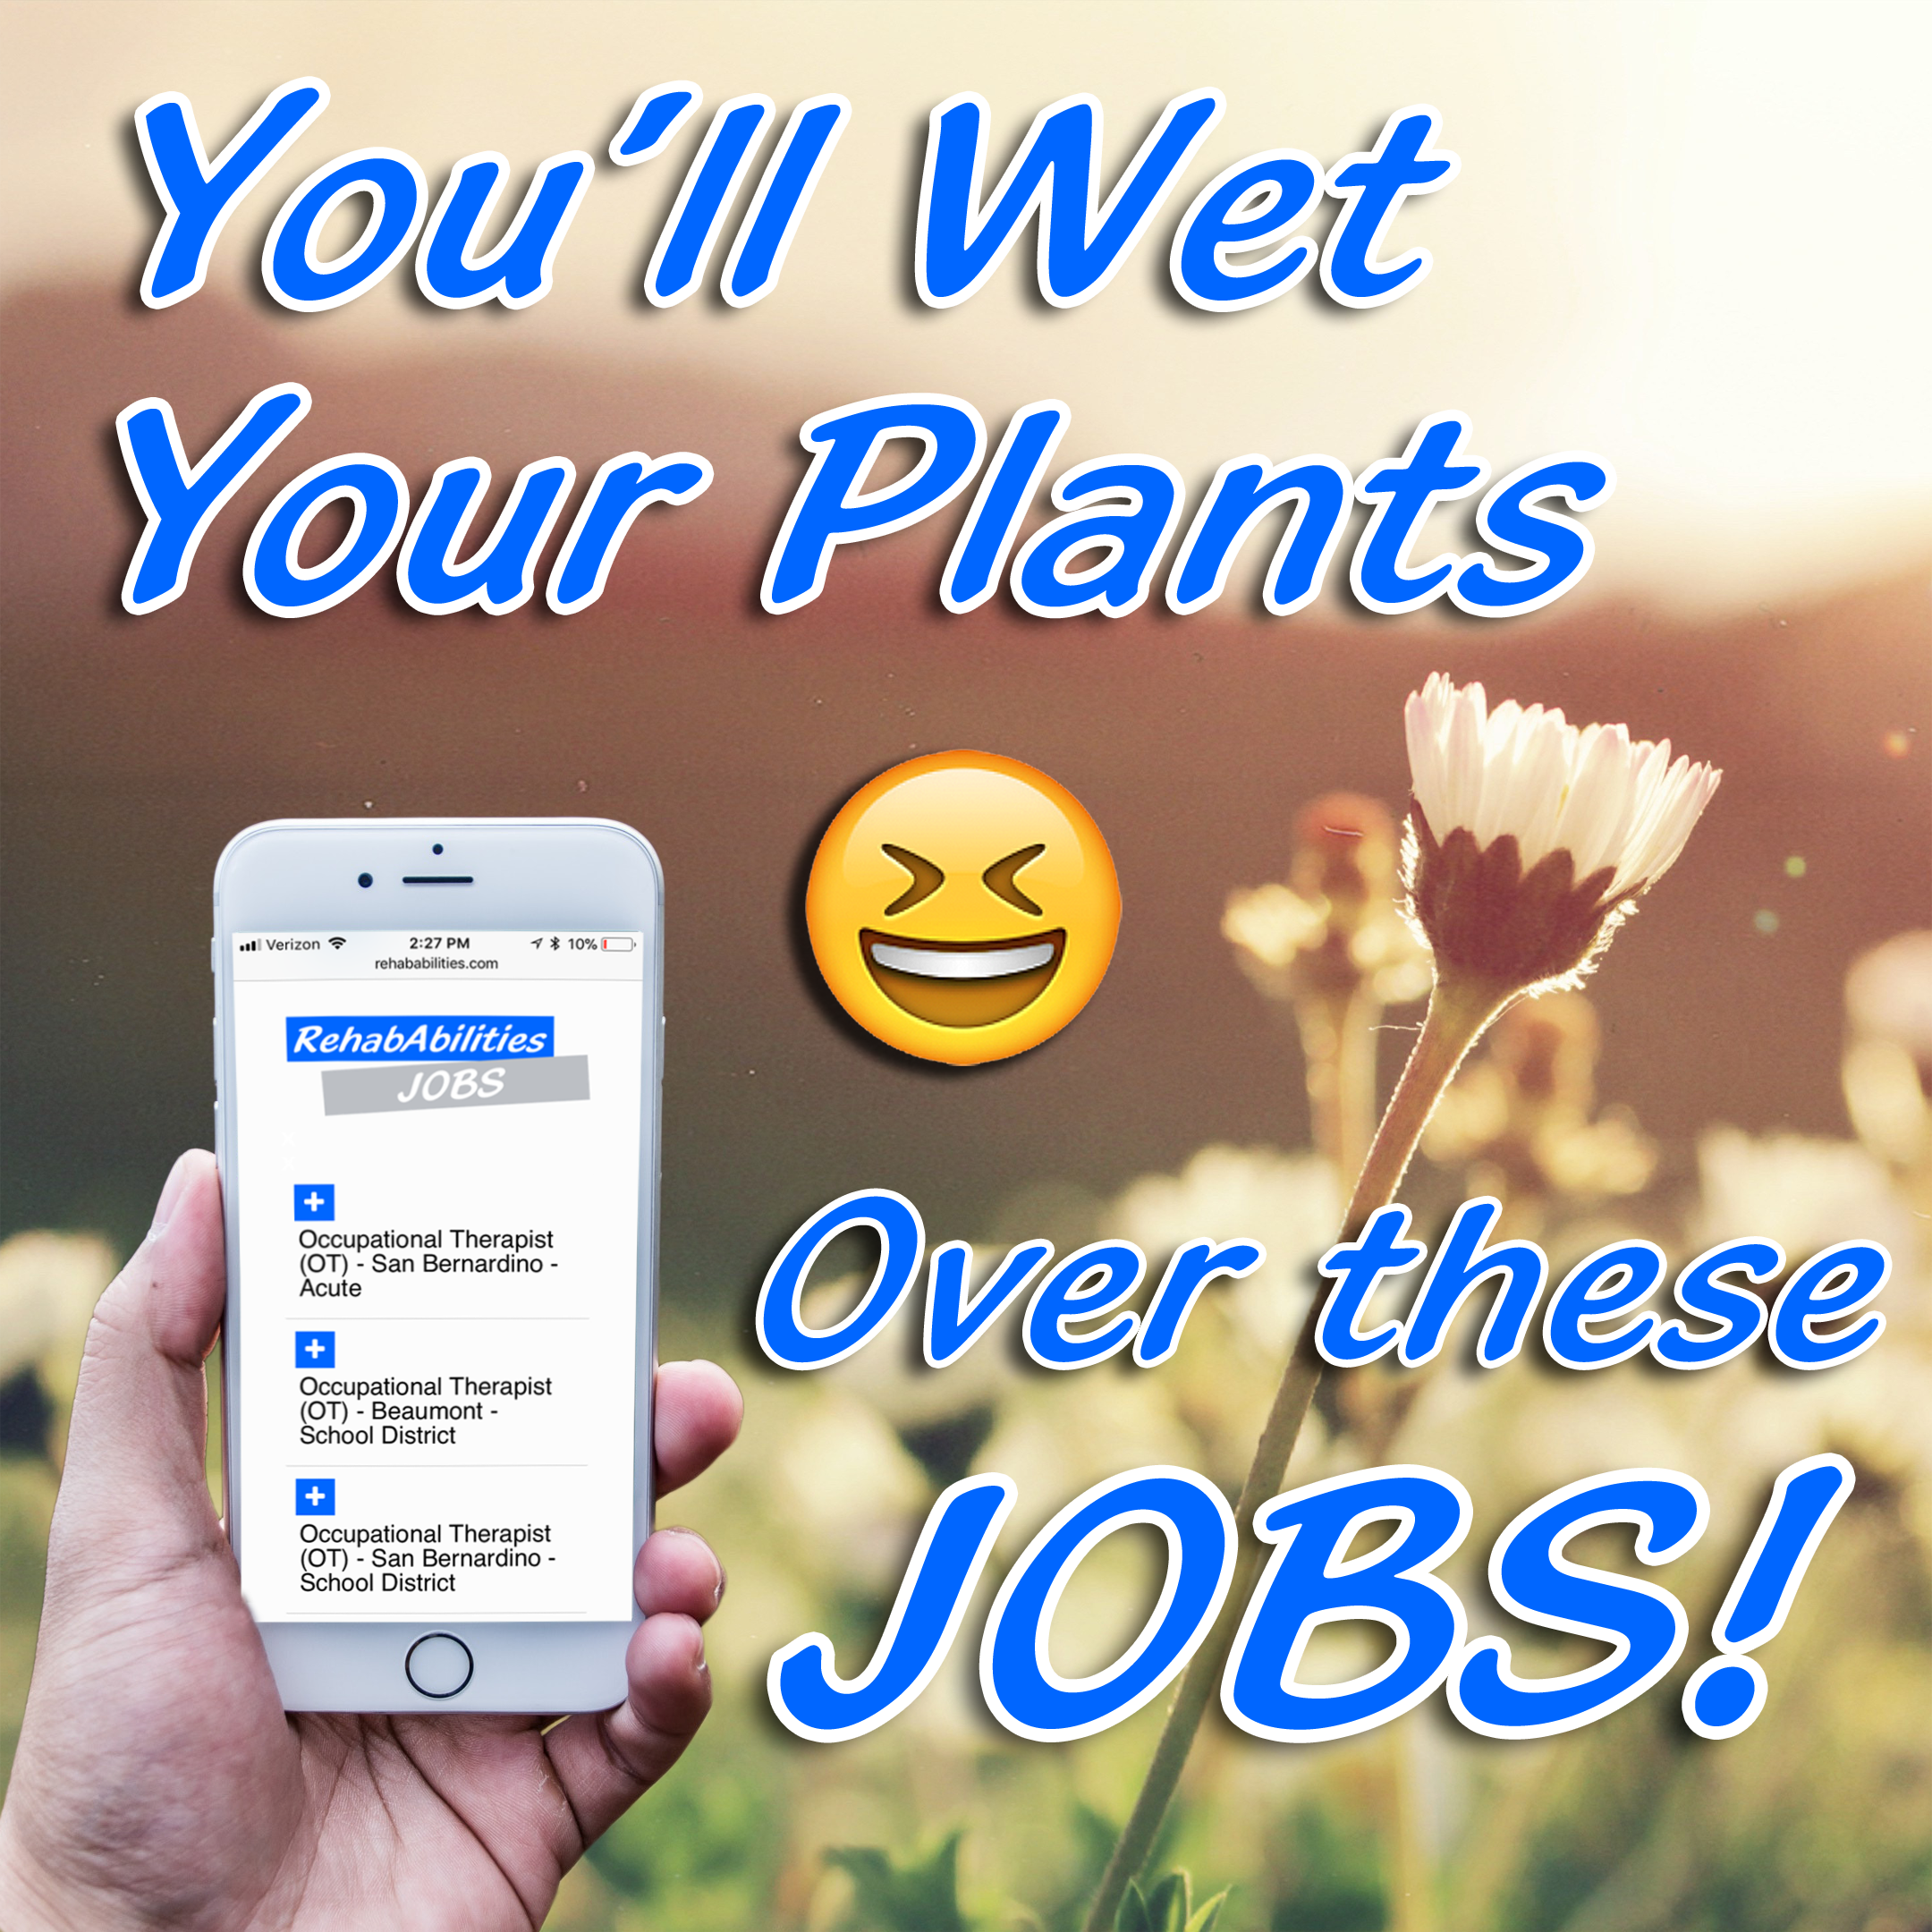 Spring Is Here Caregivers To Celebrate We Have Job Opportunities For You That Are So Good Yo Therapist School Social Services Physical Therapy Assistant